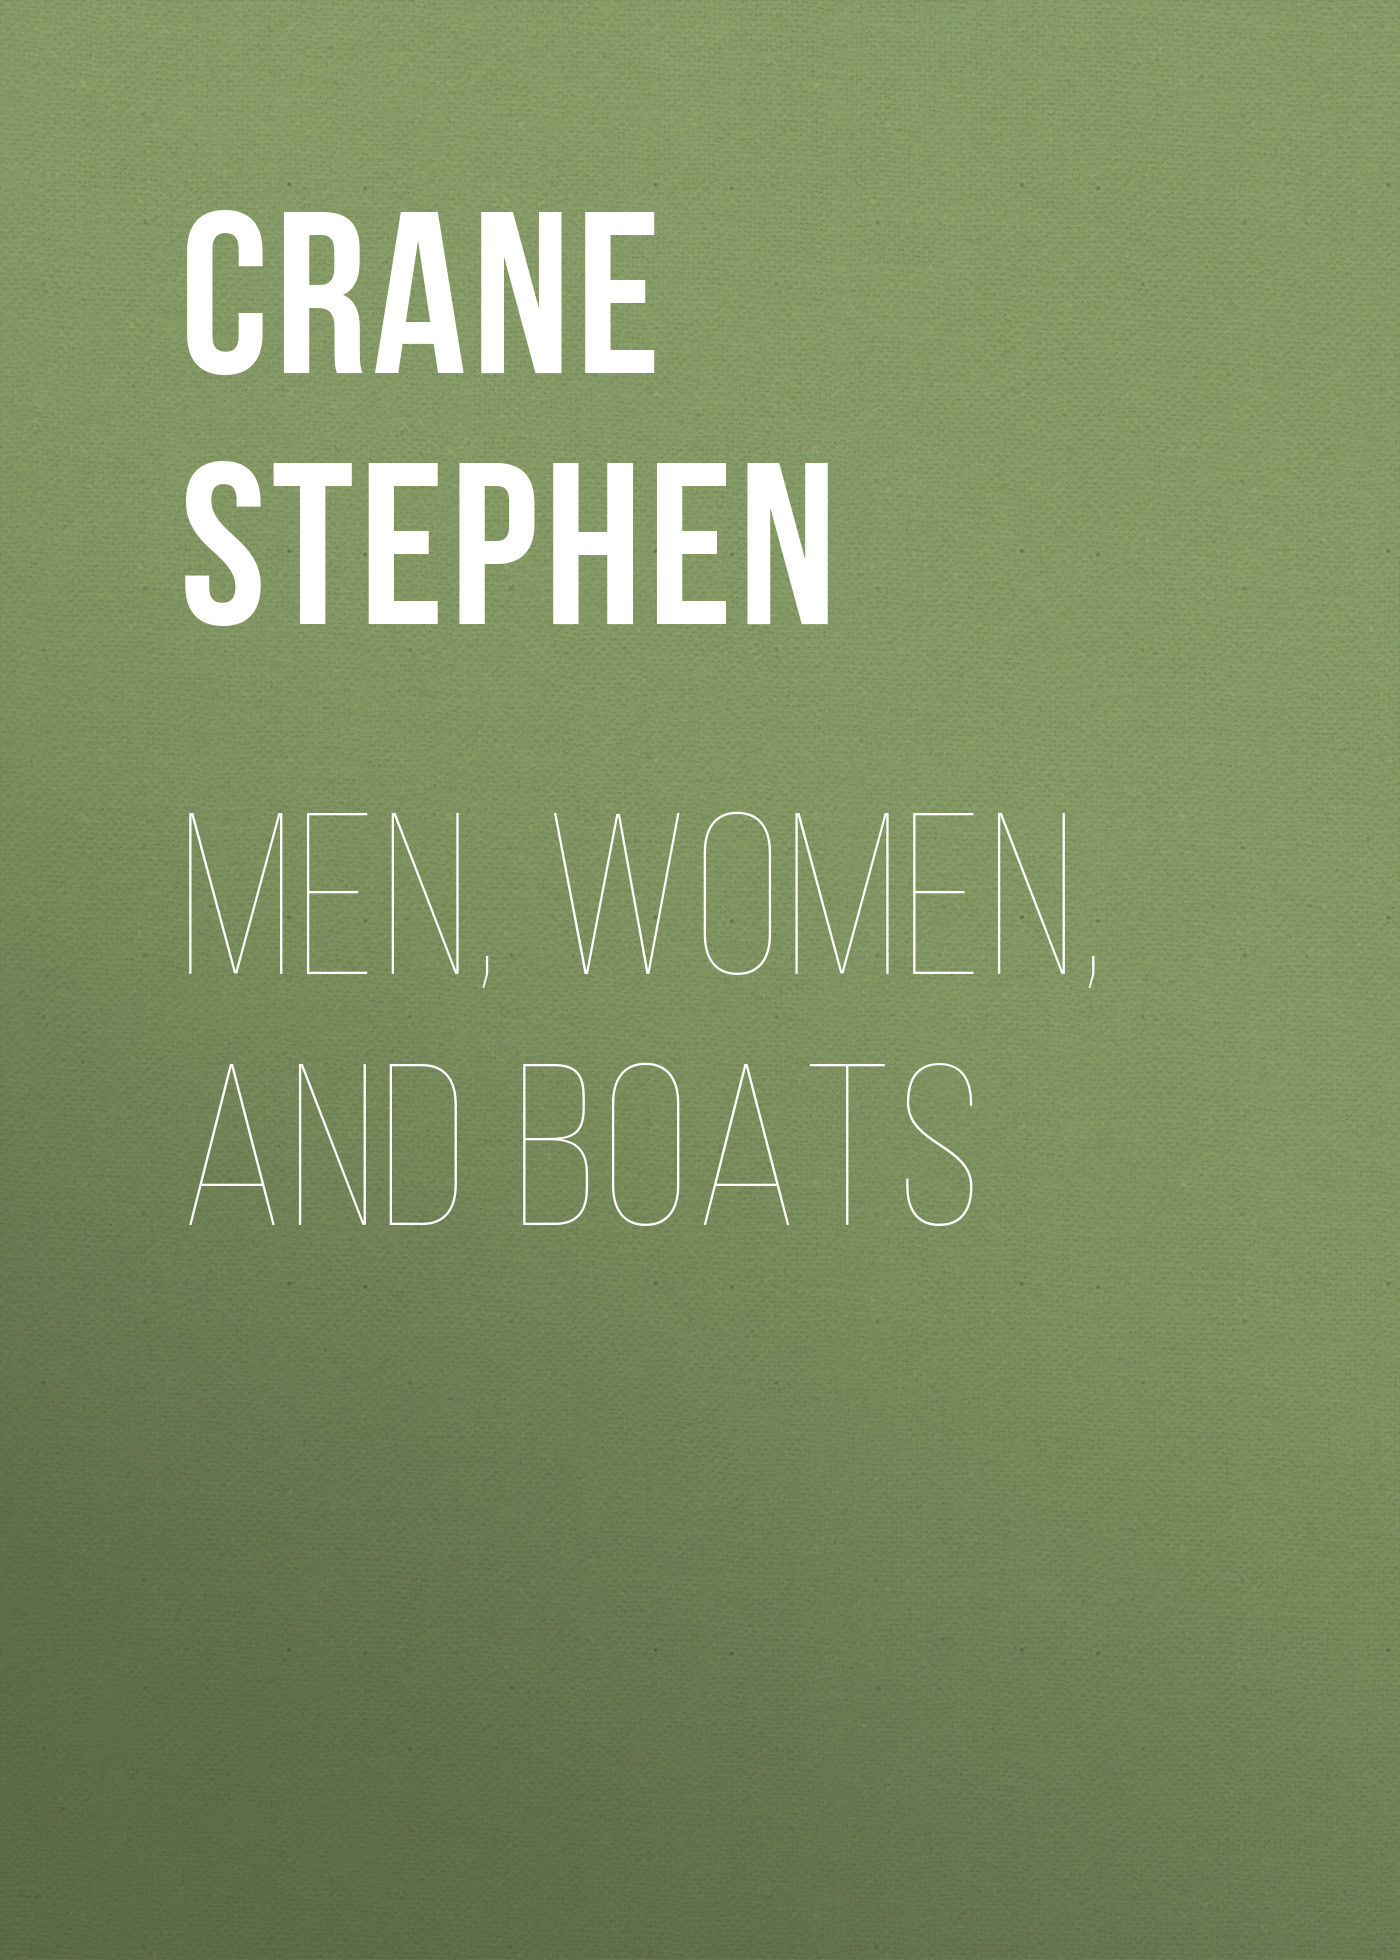 Crane Stephen Men, Women, and Boats boats puzzle books